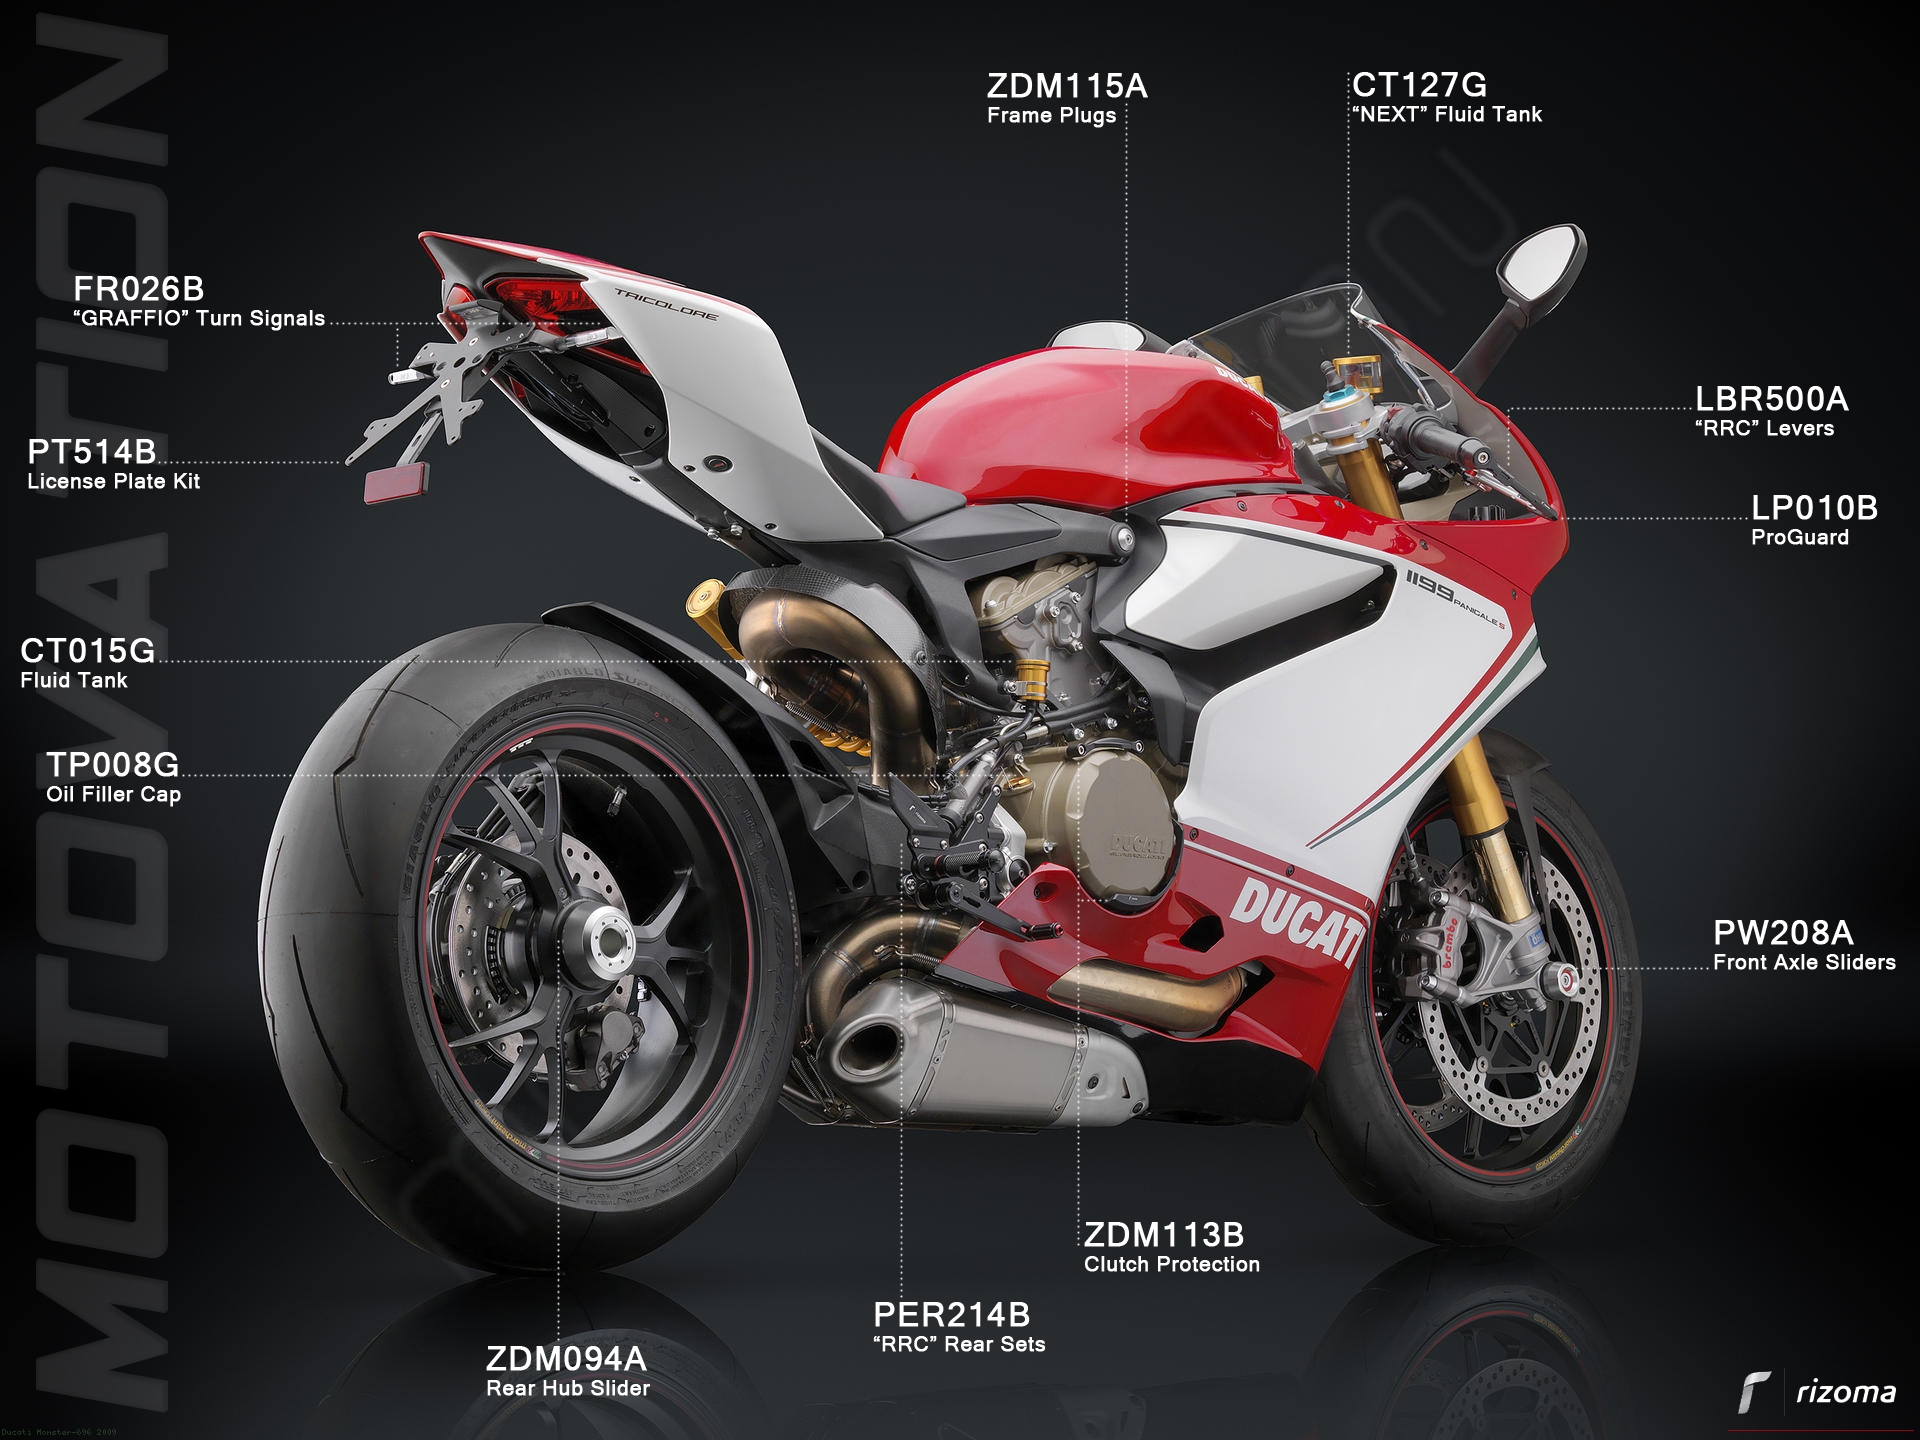 2013 Ducati Monster 696 Wiring Diagram Trusted Schematics Diagram 2013 Ducati  Monster 797 2013 Ducati Monster 796 Wiring Diagram